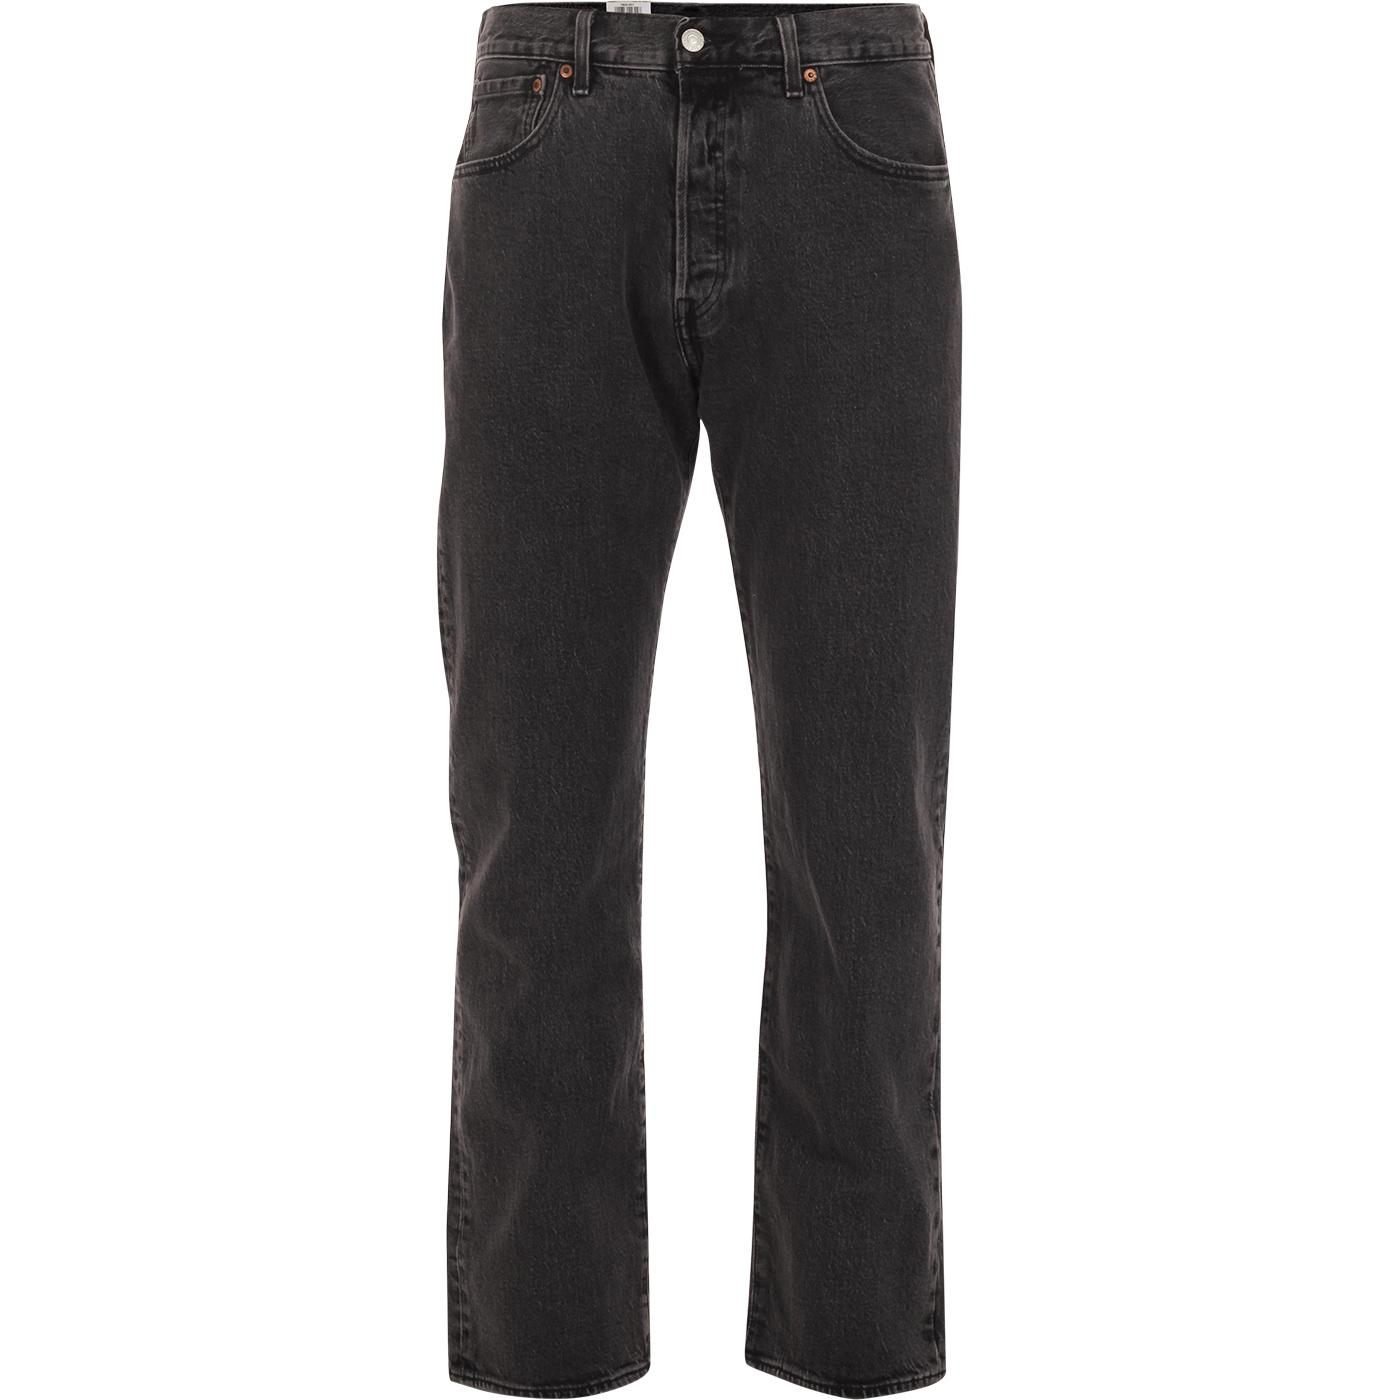 LEVI'S 501 '93 Straight Jeans (Raisin Stone)